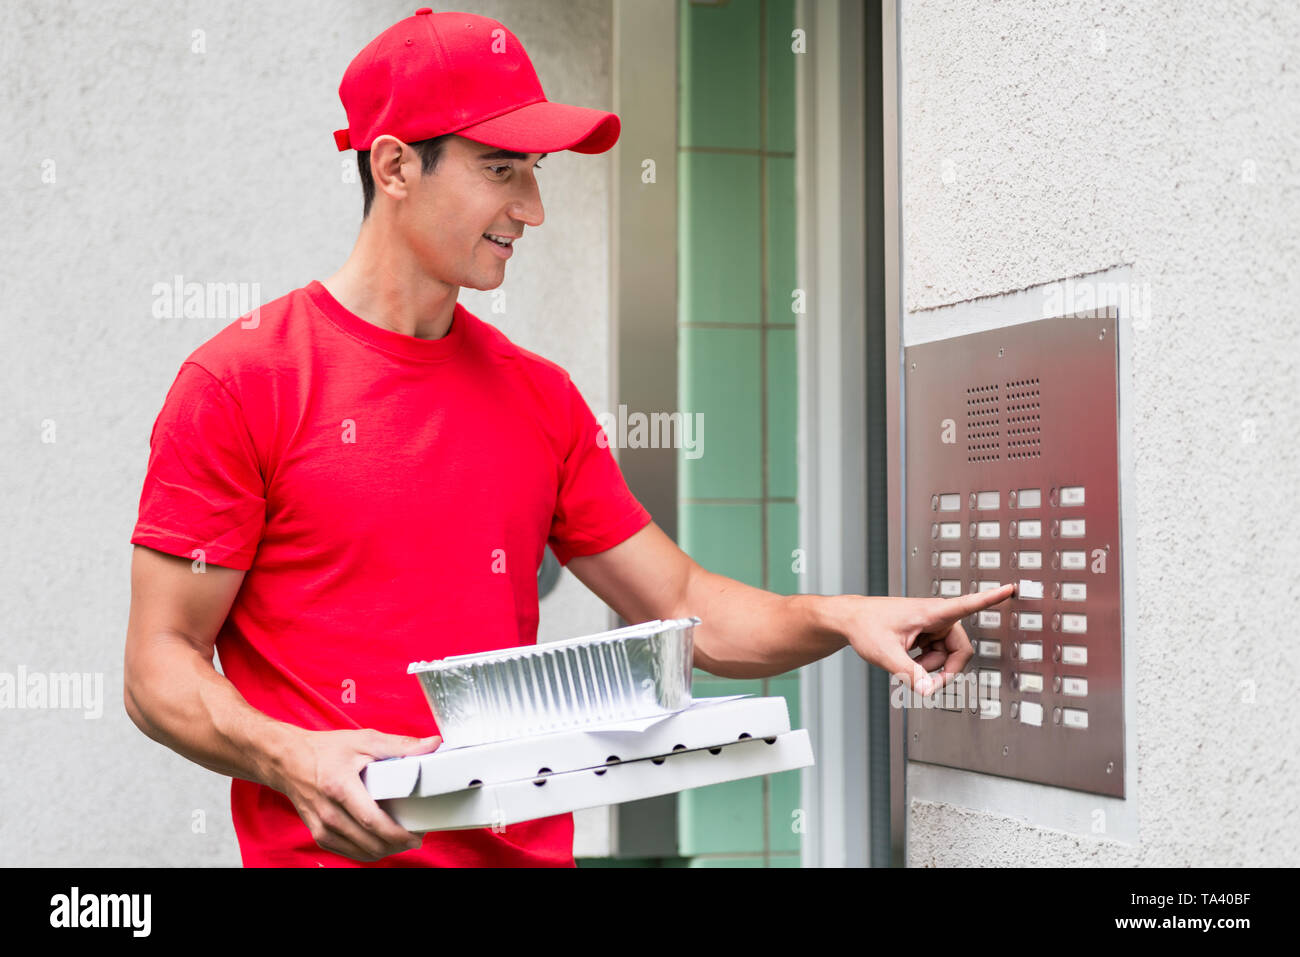 Pizza delivery man carrying boxes using the intercom - Stock Image